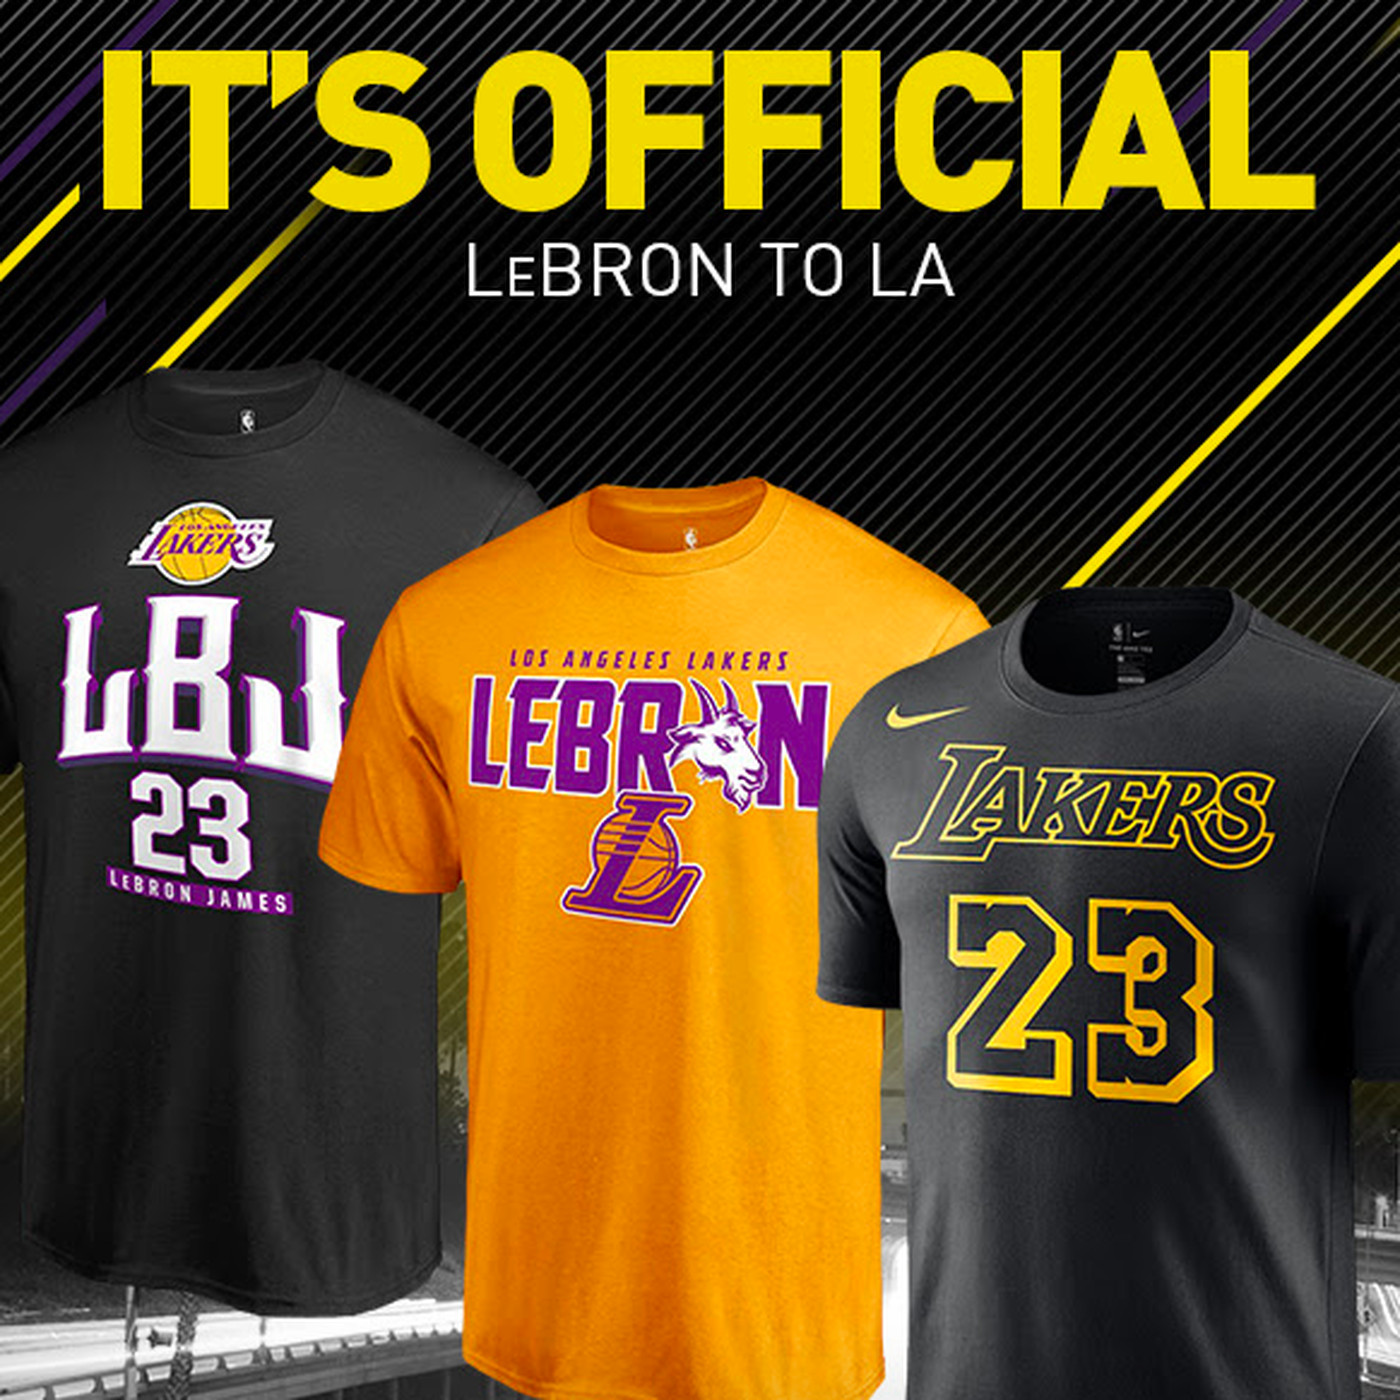 e65795d1d The NBA had to stop selling LeBron James jerseys because he hasn t signed  with the Lakers yet - Silver Screen and Roll